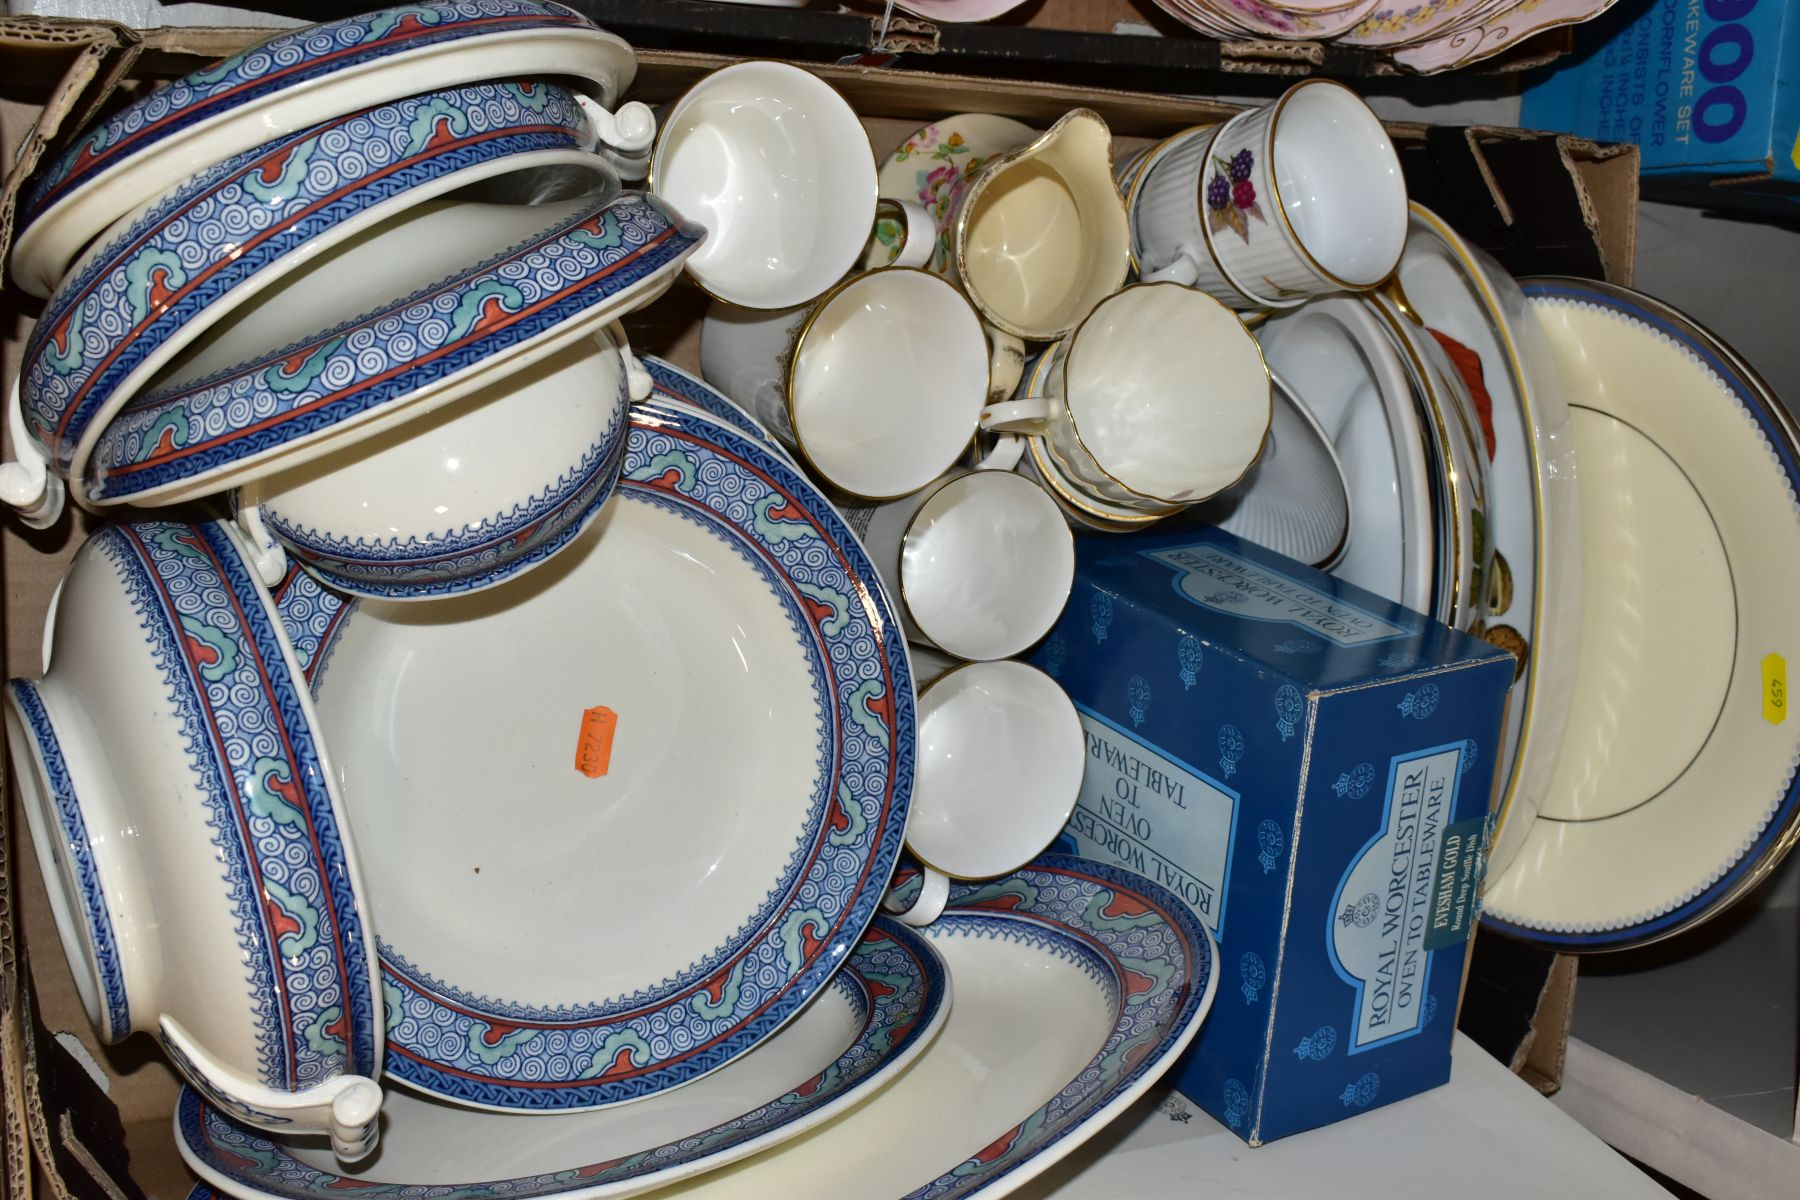 TWO BOXES OF WEDGWOOD ROYAL WORCESTER, ROYAL ALBERT AND TUSCAN CHINA TEA AND DINNER WARES, including - Image 3 of 10